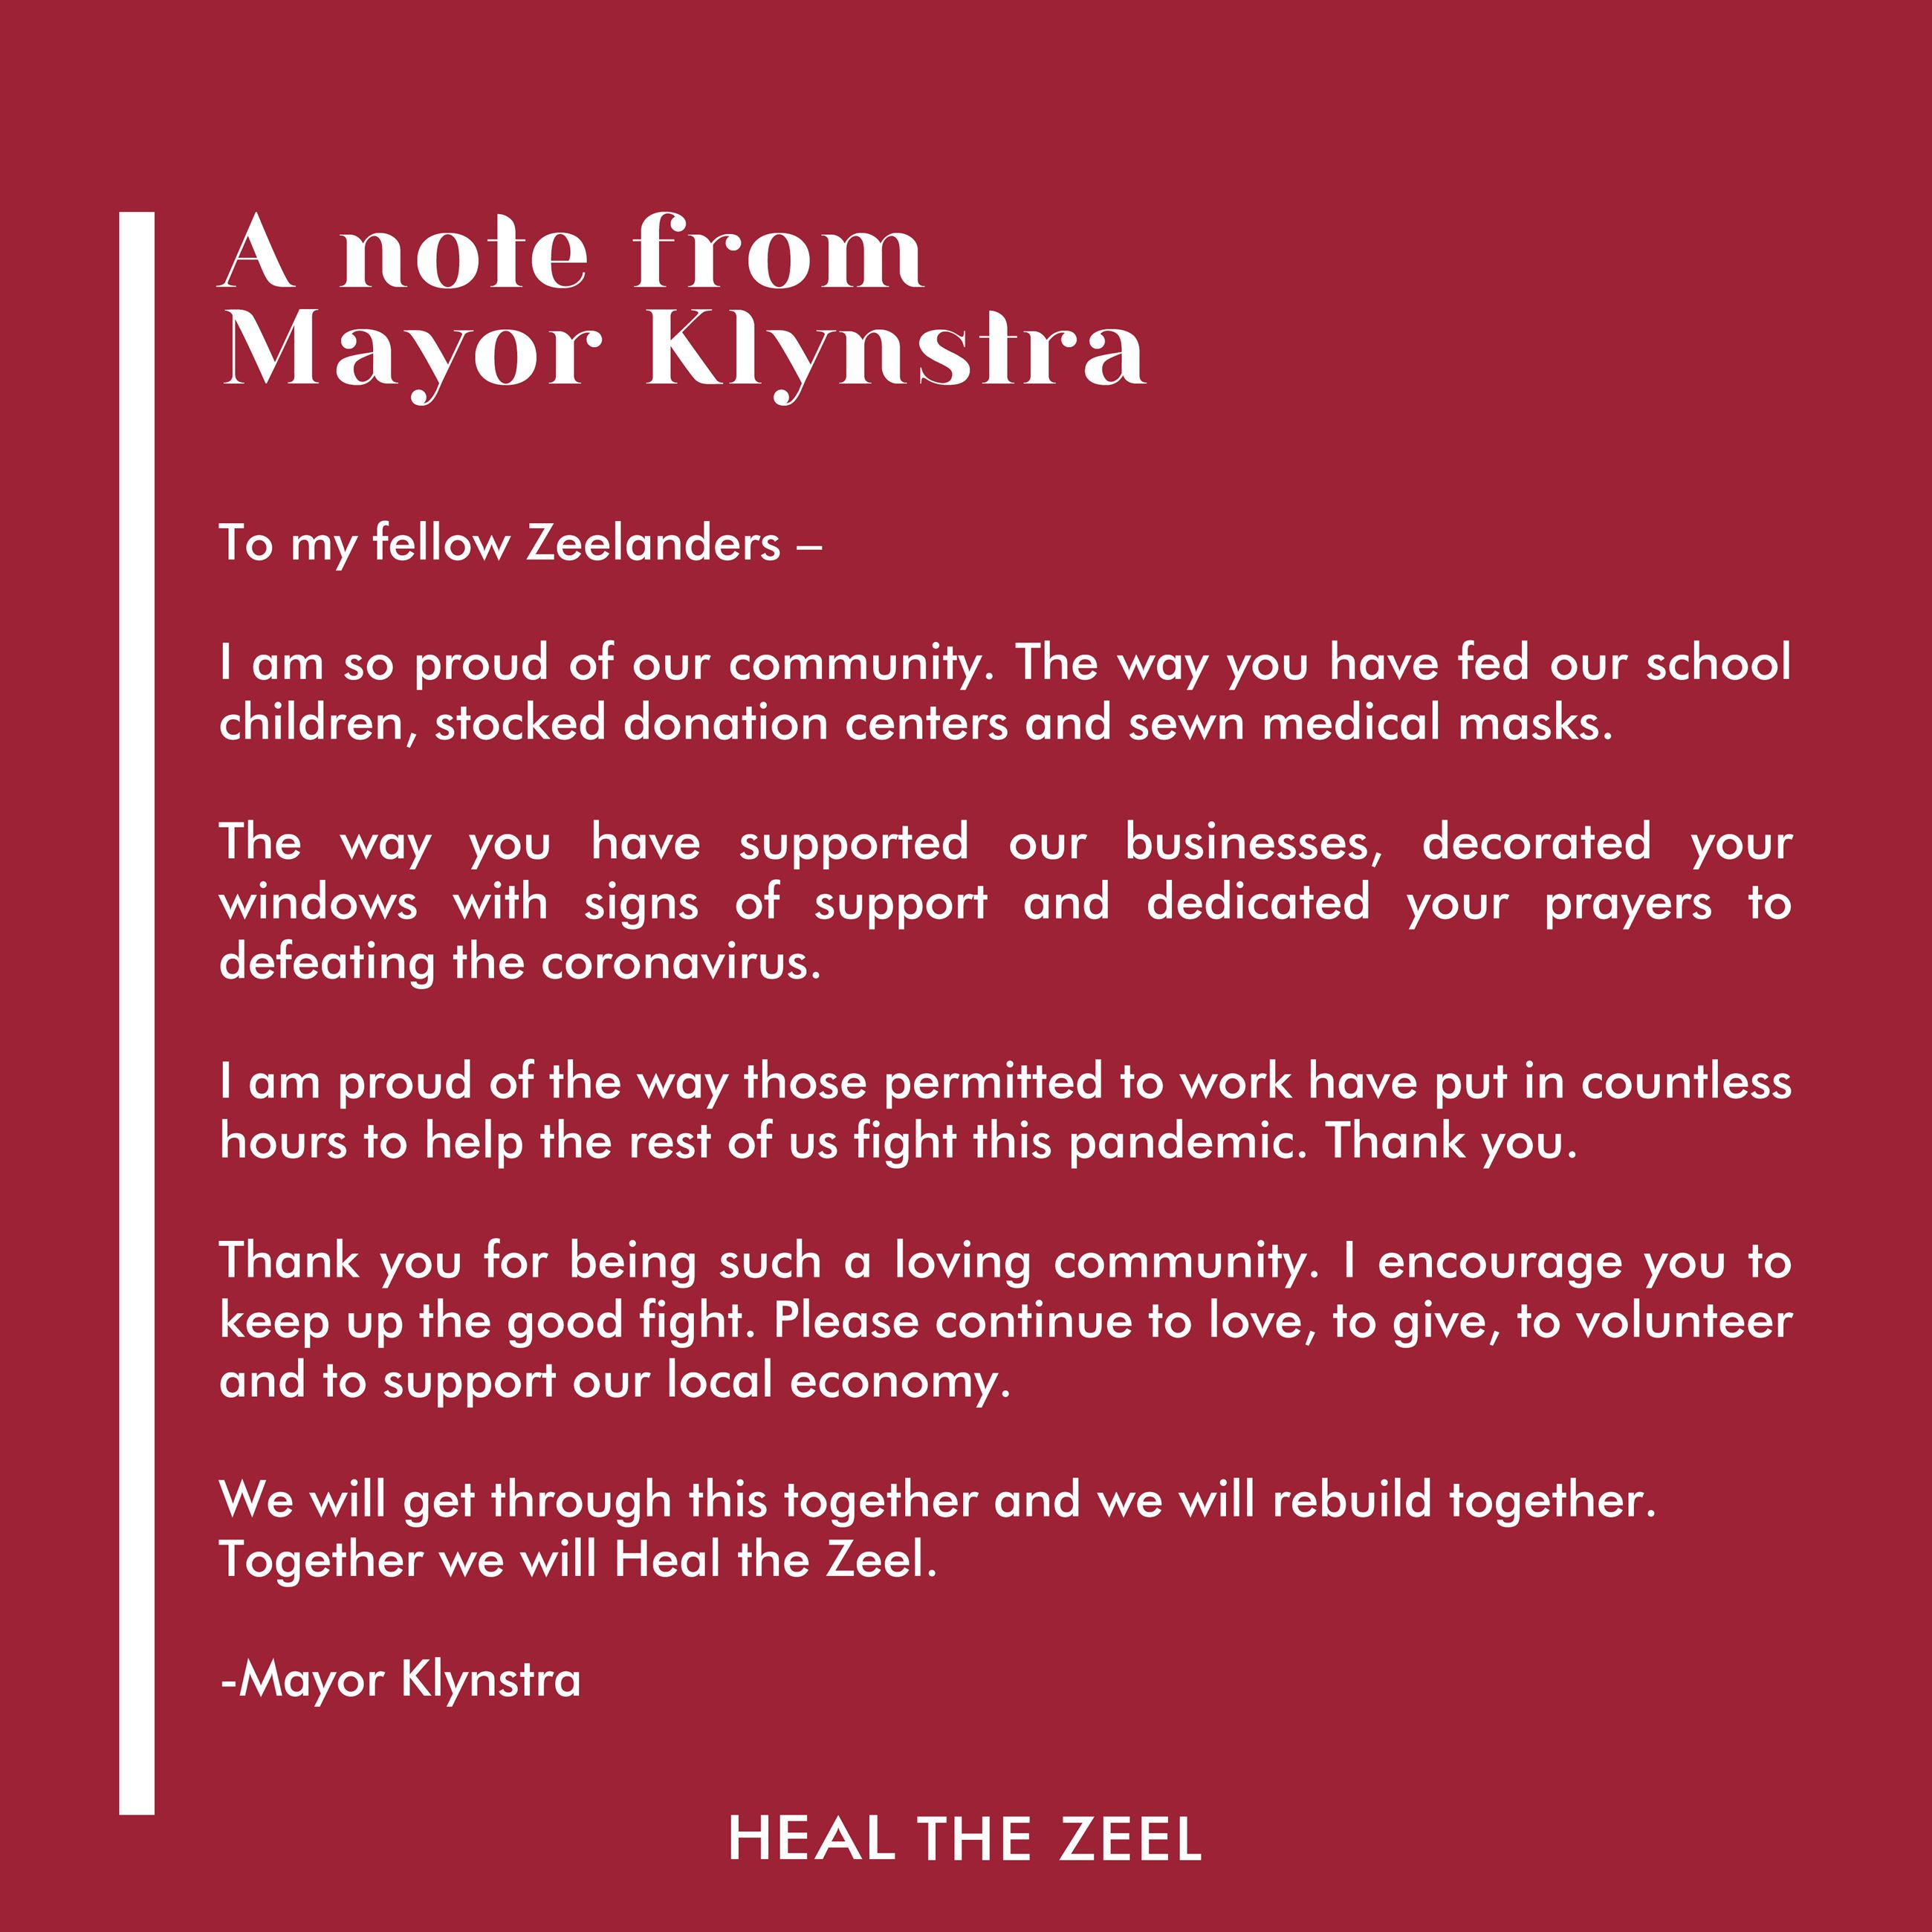 a note from the mayor